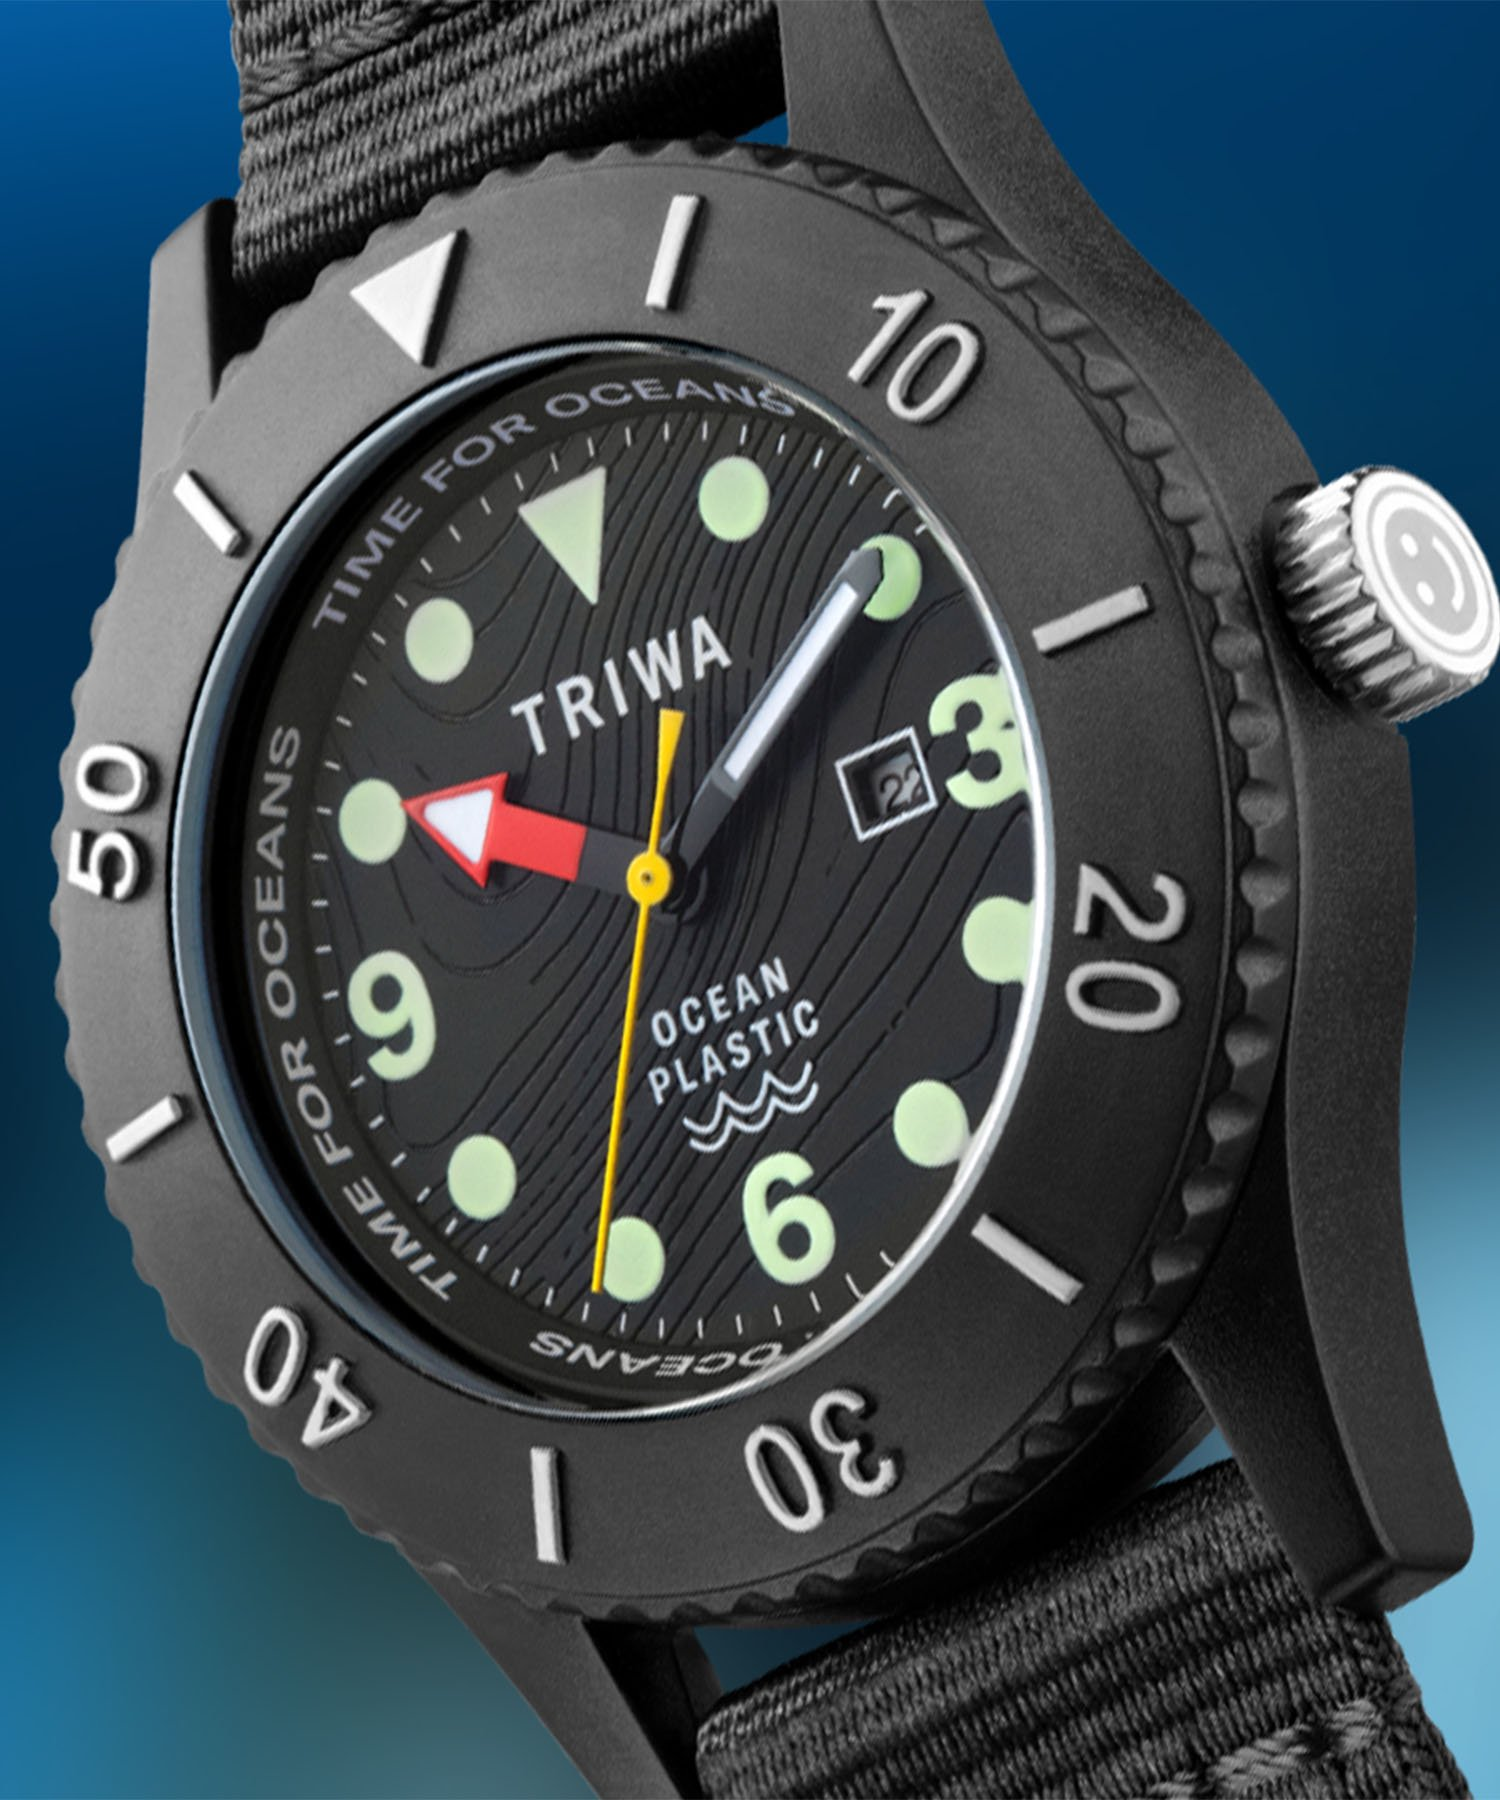 <img class='new_mark_img1' src='https://img.shop-pro.jp/img/new/icons15.gif' style='border:none;display:inline;margin:0px;padding:0px;width:auto;' />【TRIWA】Time for SUB Oceans BLK